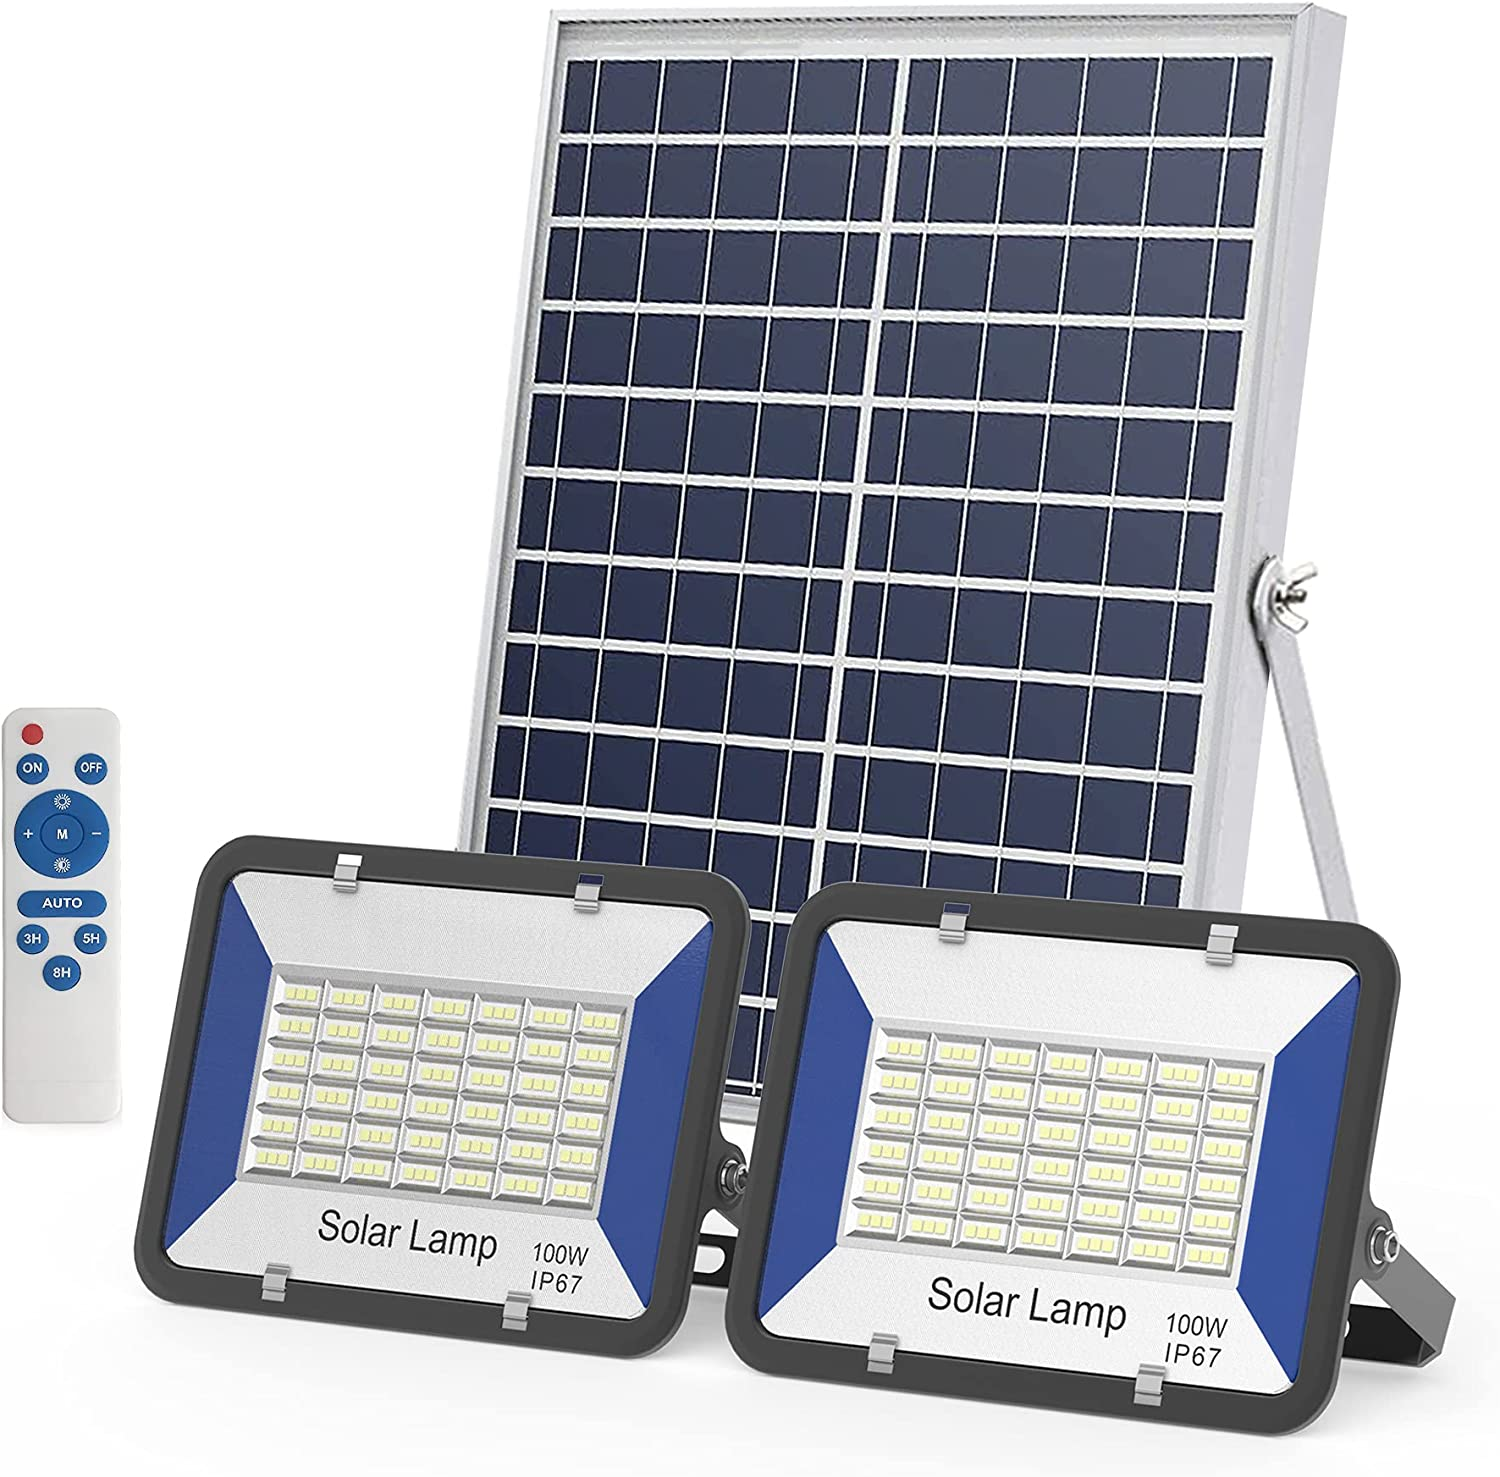 Solar Flood Light, 2 Pack 100W Dusk to Dawn with Remote Control LED Bright White Floodlights, Ip67 Waterproof Solar Power Light for Yard, Garden, Shed